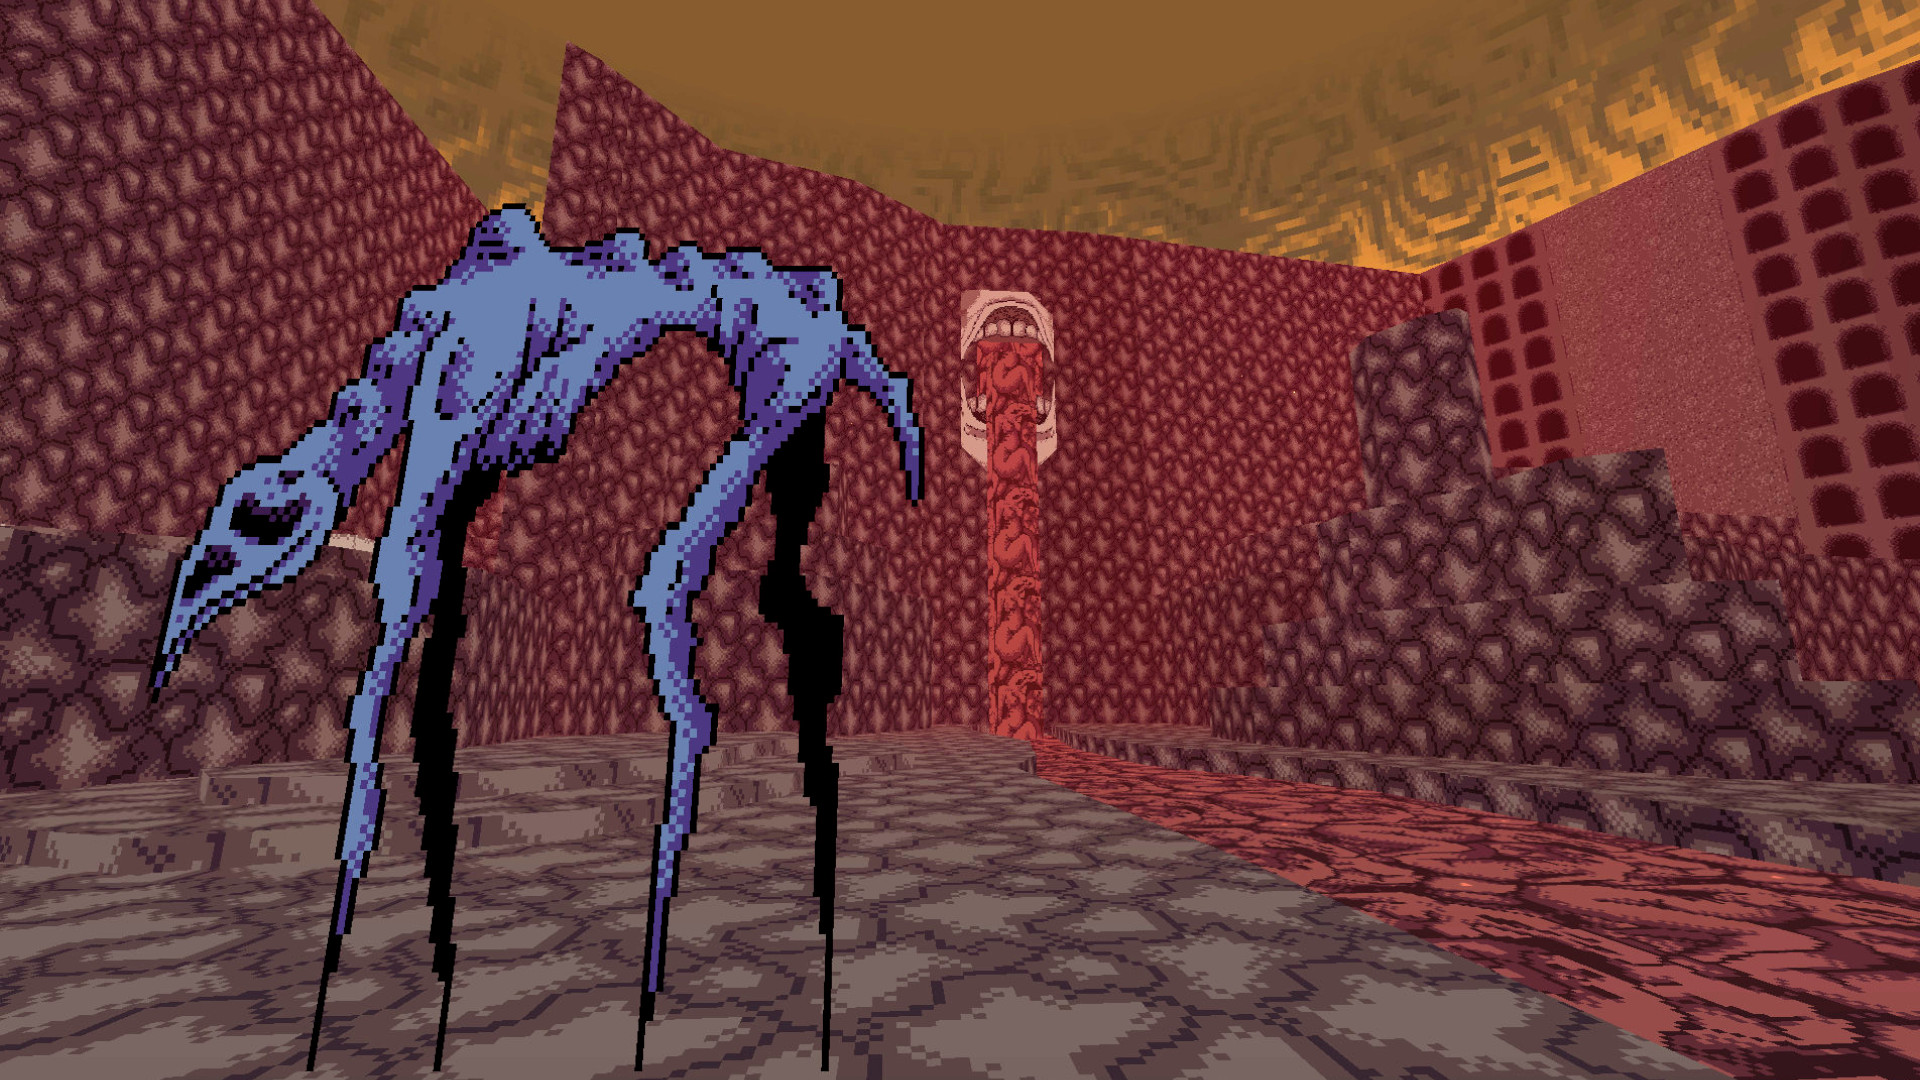 Picture Metroid Prime in the Doom engine, but a nightmare – that's Vomitoreum